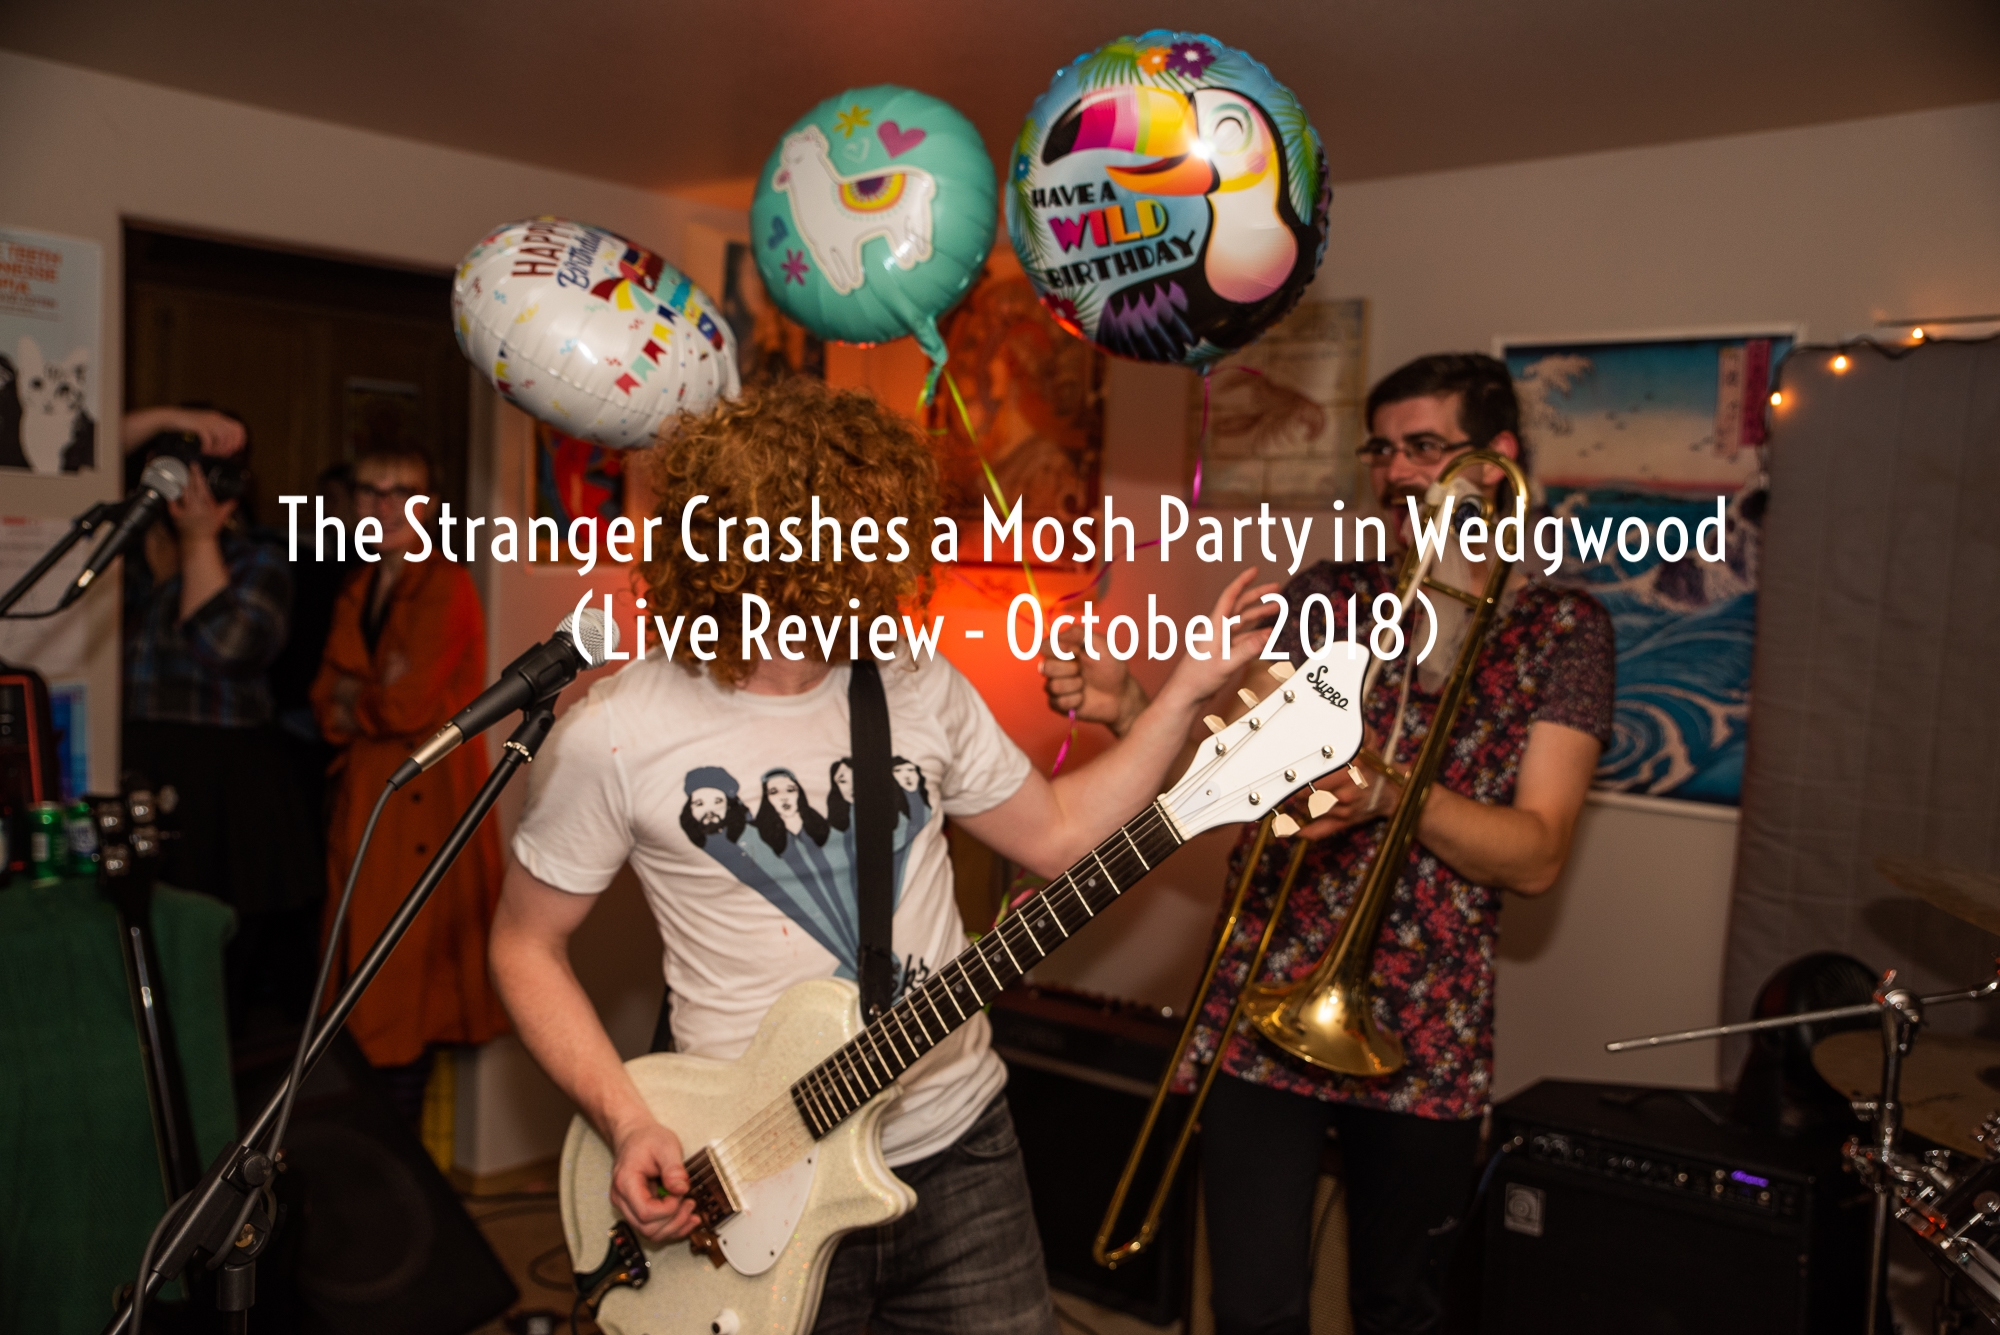 """Actionesse, the ""post-horncore"" house band, was equipped to get loud…Shit got full-on moshy as the birthday boy went from rocking out on top of a piano to splatting onto his back on the floor—all while still playing the guitar."" - The Stranger"